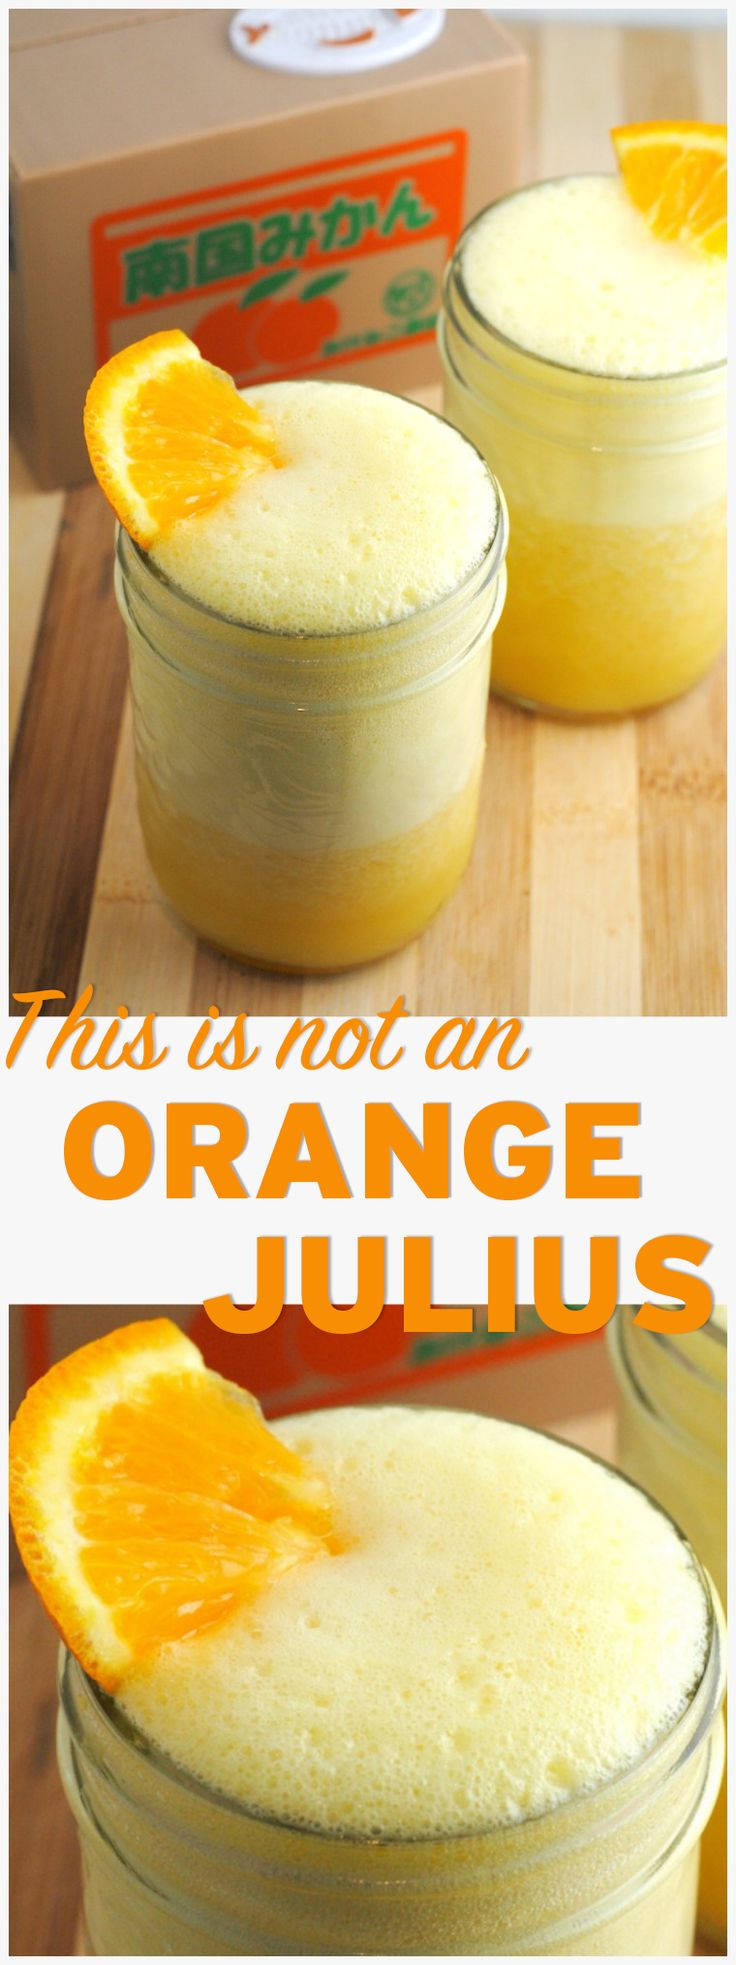 This is not an Orange Julius, but it tastes just as good. This vegan treat is super easy to make and doesn't require anything fancy...besides a good blender! http://theblenderist.com/not-an-orange-julius/